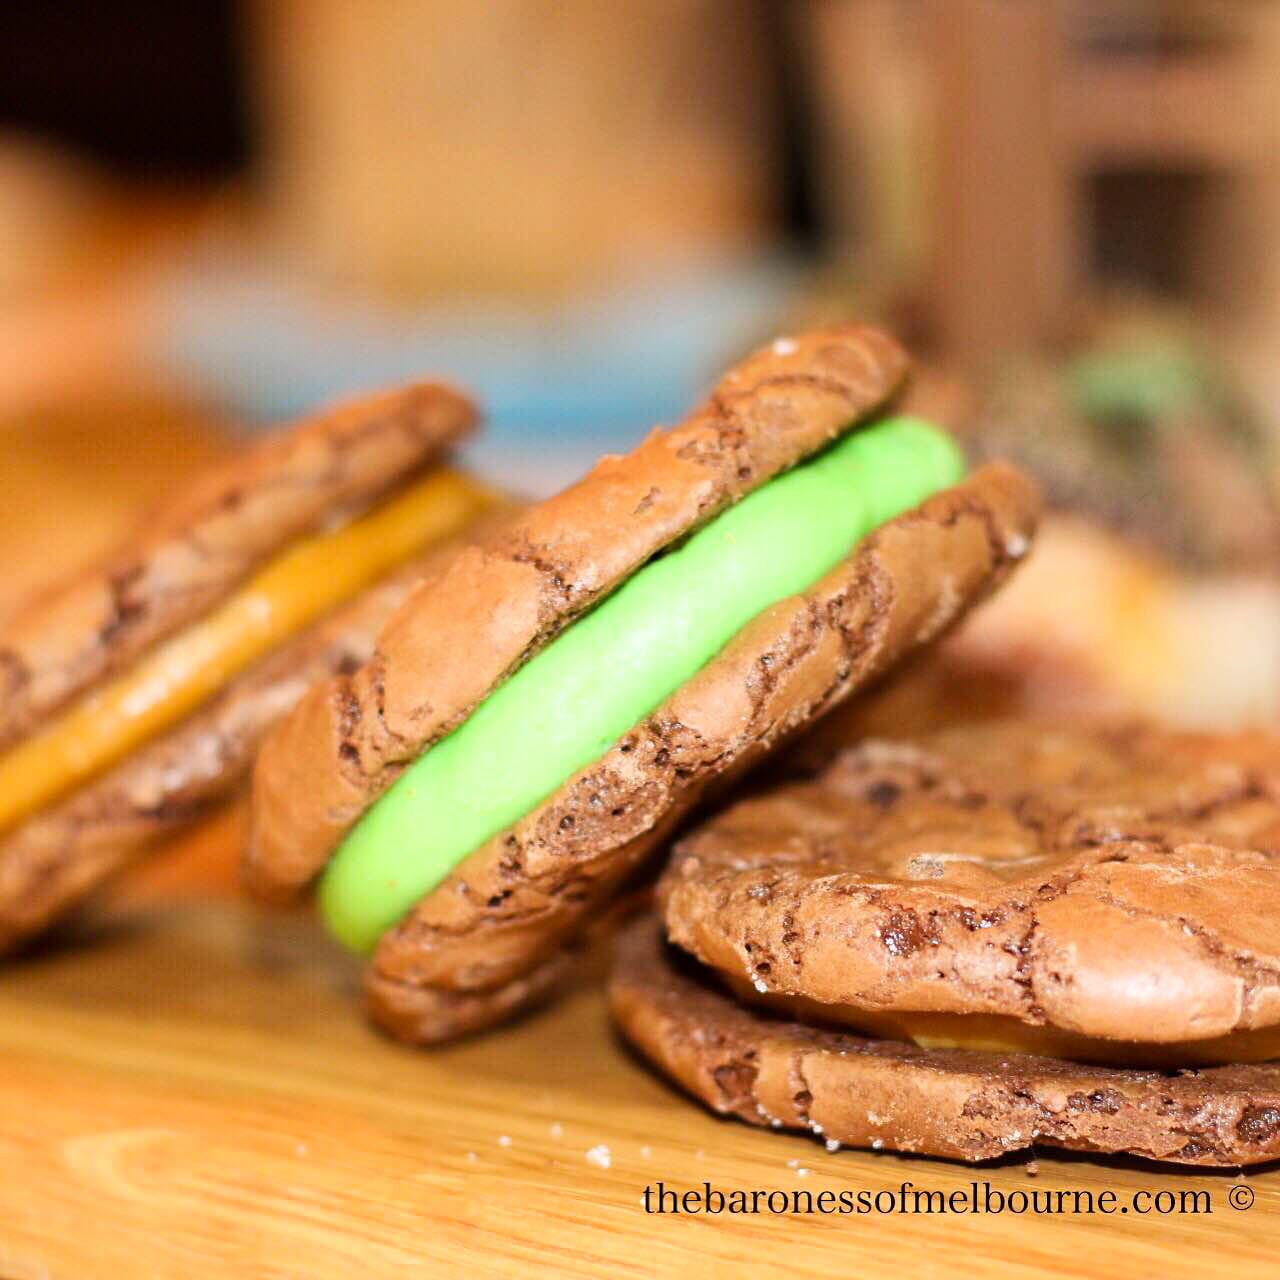 The amazing peppermint crisp chocolate brownie cookie sandwich by Bistro Morgan